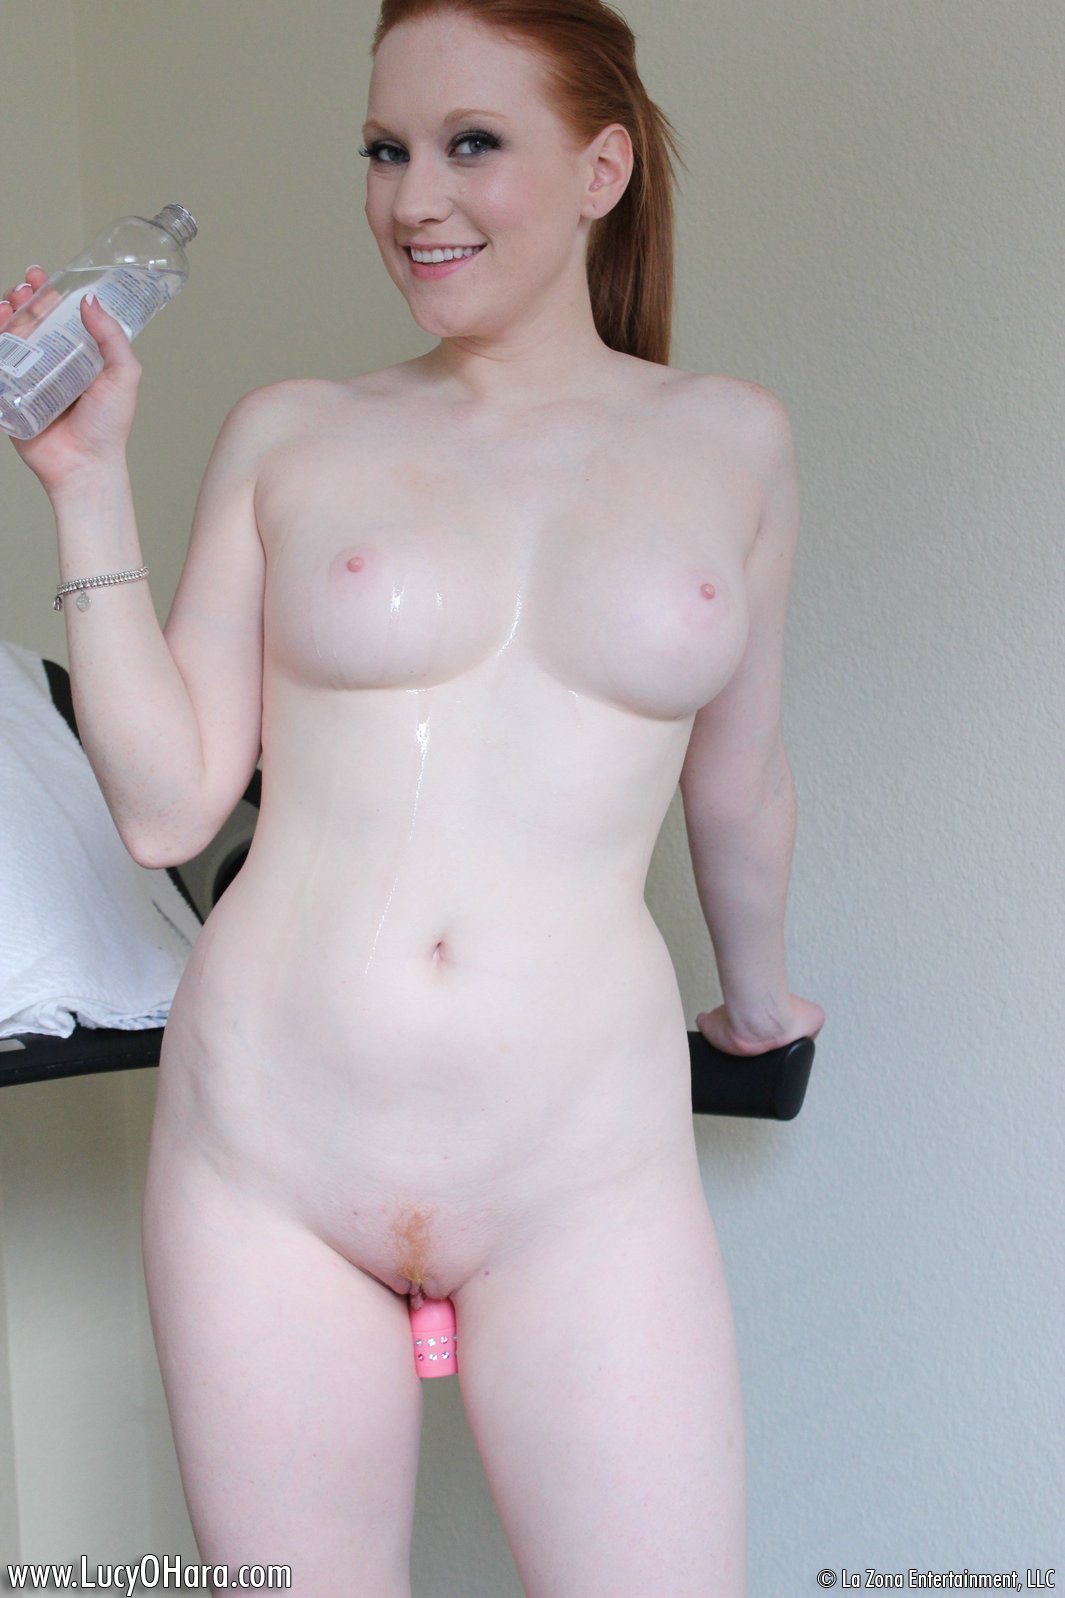 Pale skinned elves pic porn pics nude picture